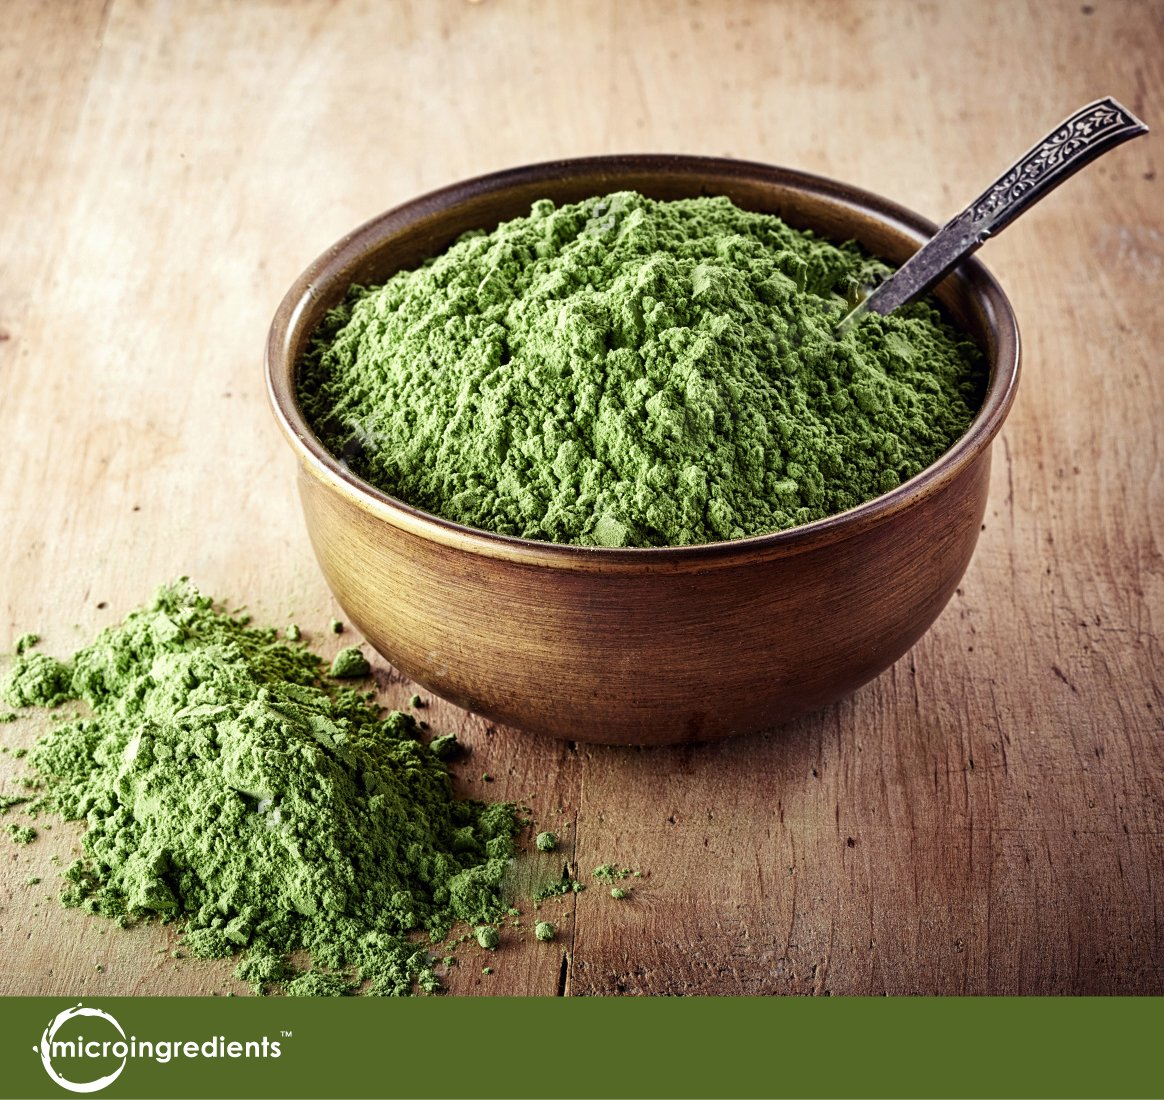 Sustainably US Grown, Organic Wheat Grass Powder, 150 Serving (1 Pound), Rich Fiber, Chlorophyll, Antioxidants, Essential Amino Acids, Fatty Acids, Minerals & Vitamins. Best Vegan & Non-GMO SuperFoods by Micro Ingredients (Image #2)